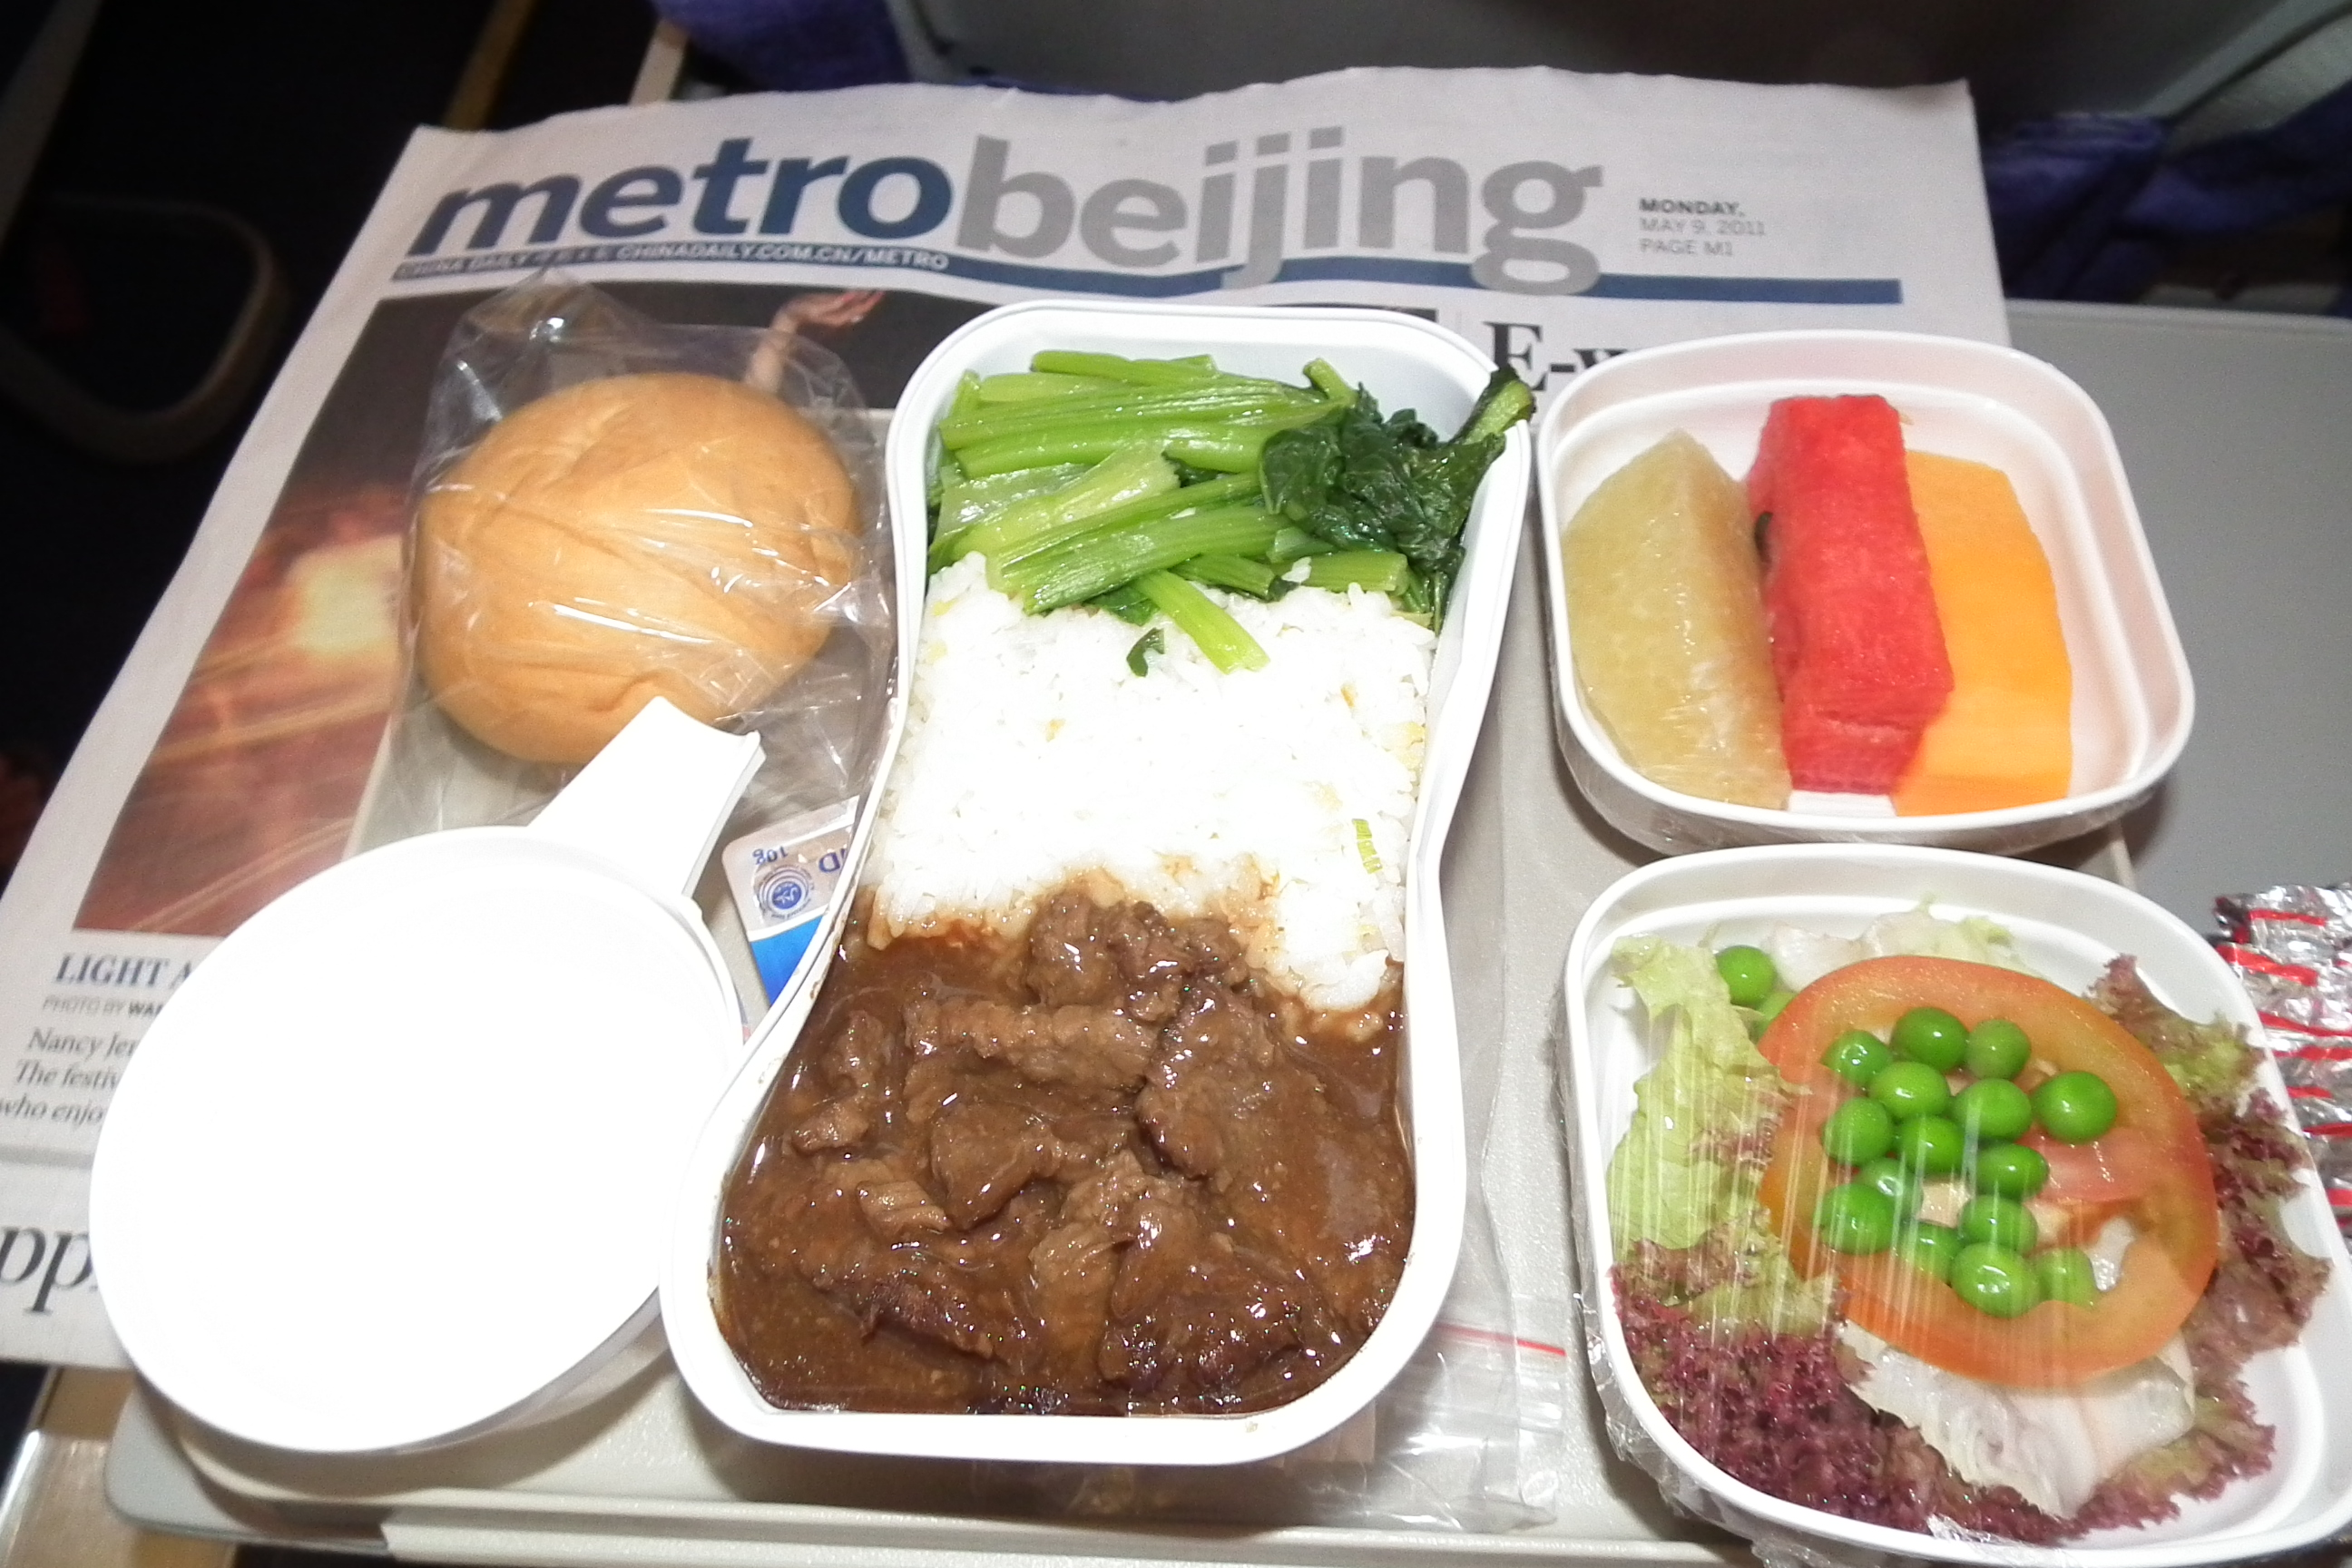 File:Airline meal of Air China 中国国際航空機内食